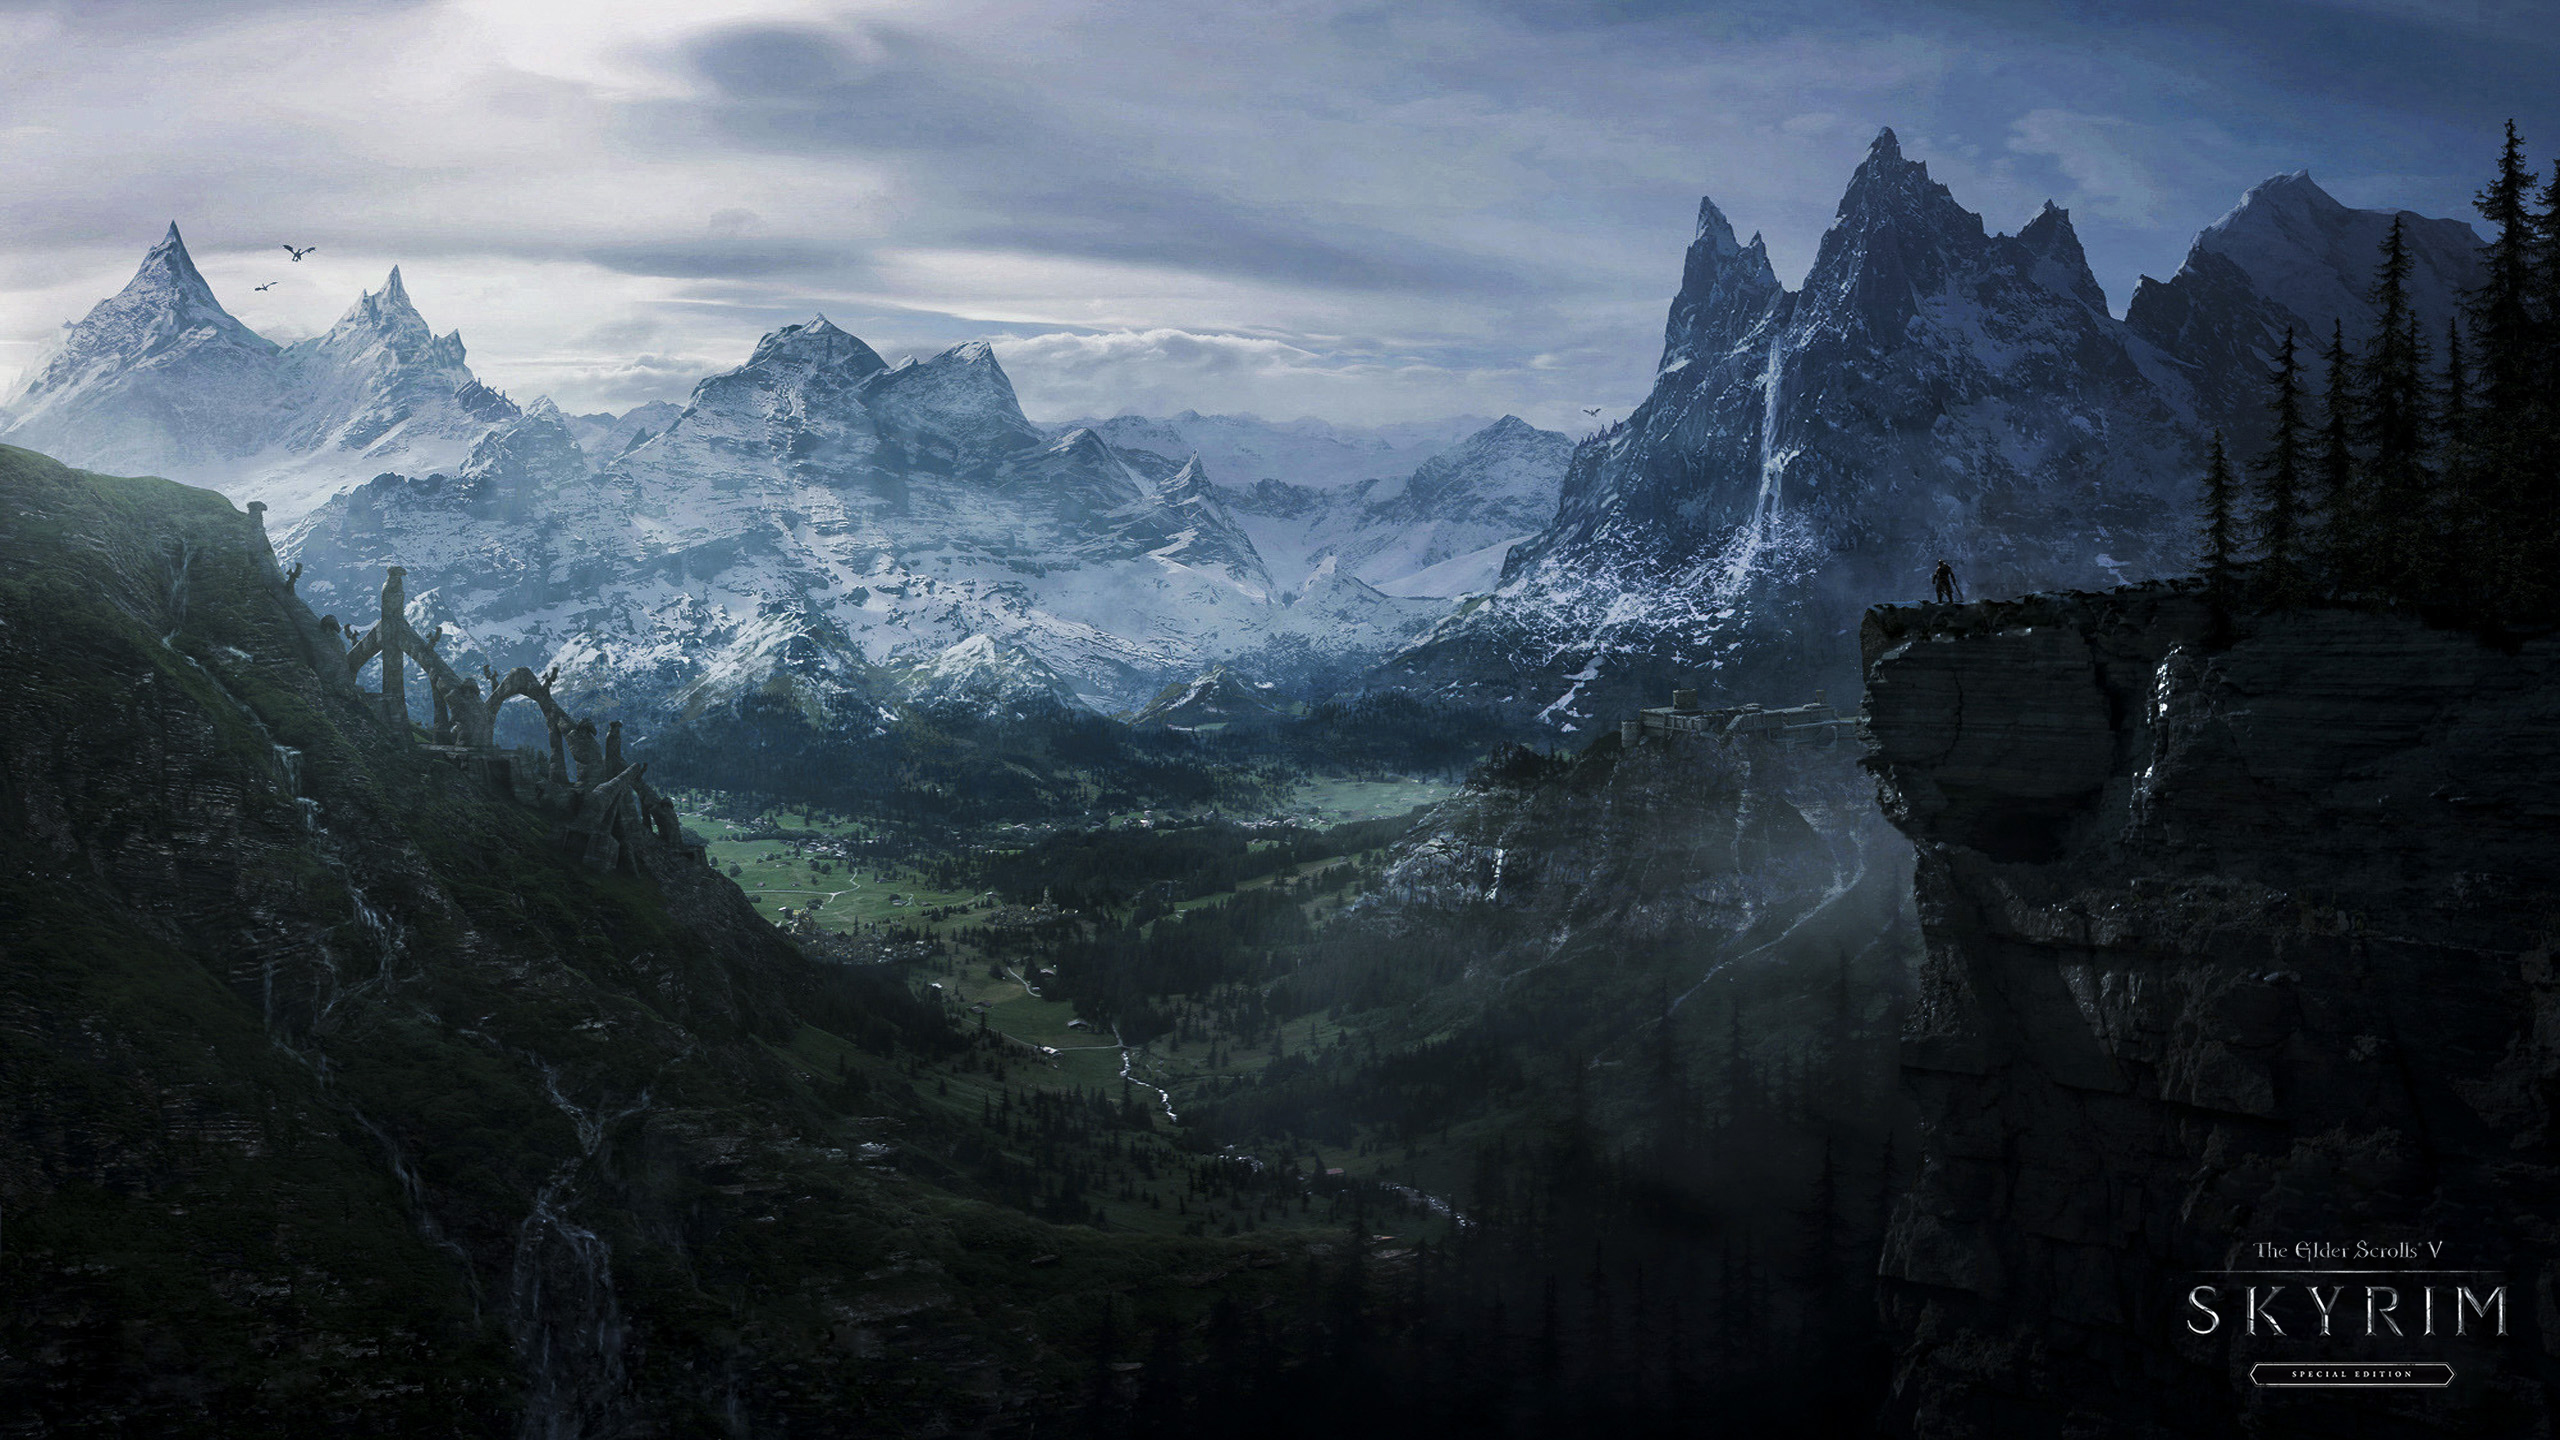 skyrim 1980 x 1040 wallpaper - photo #15